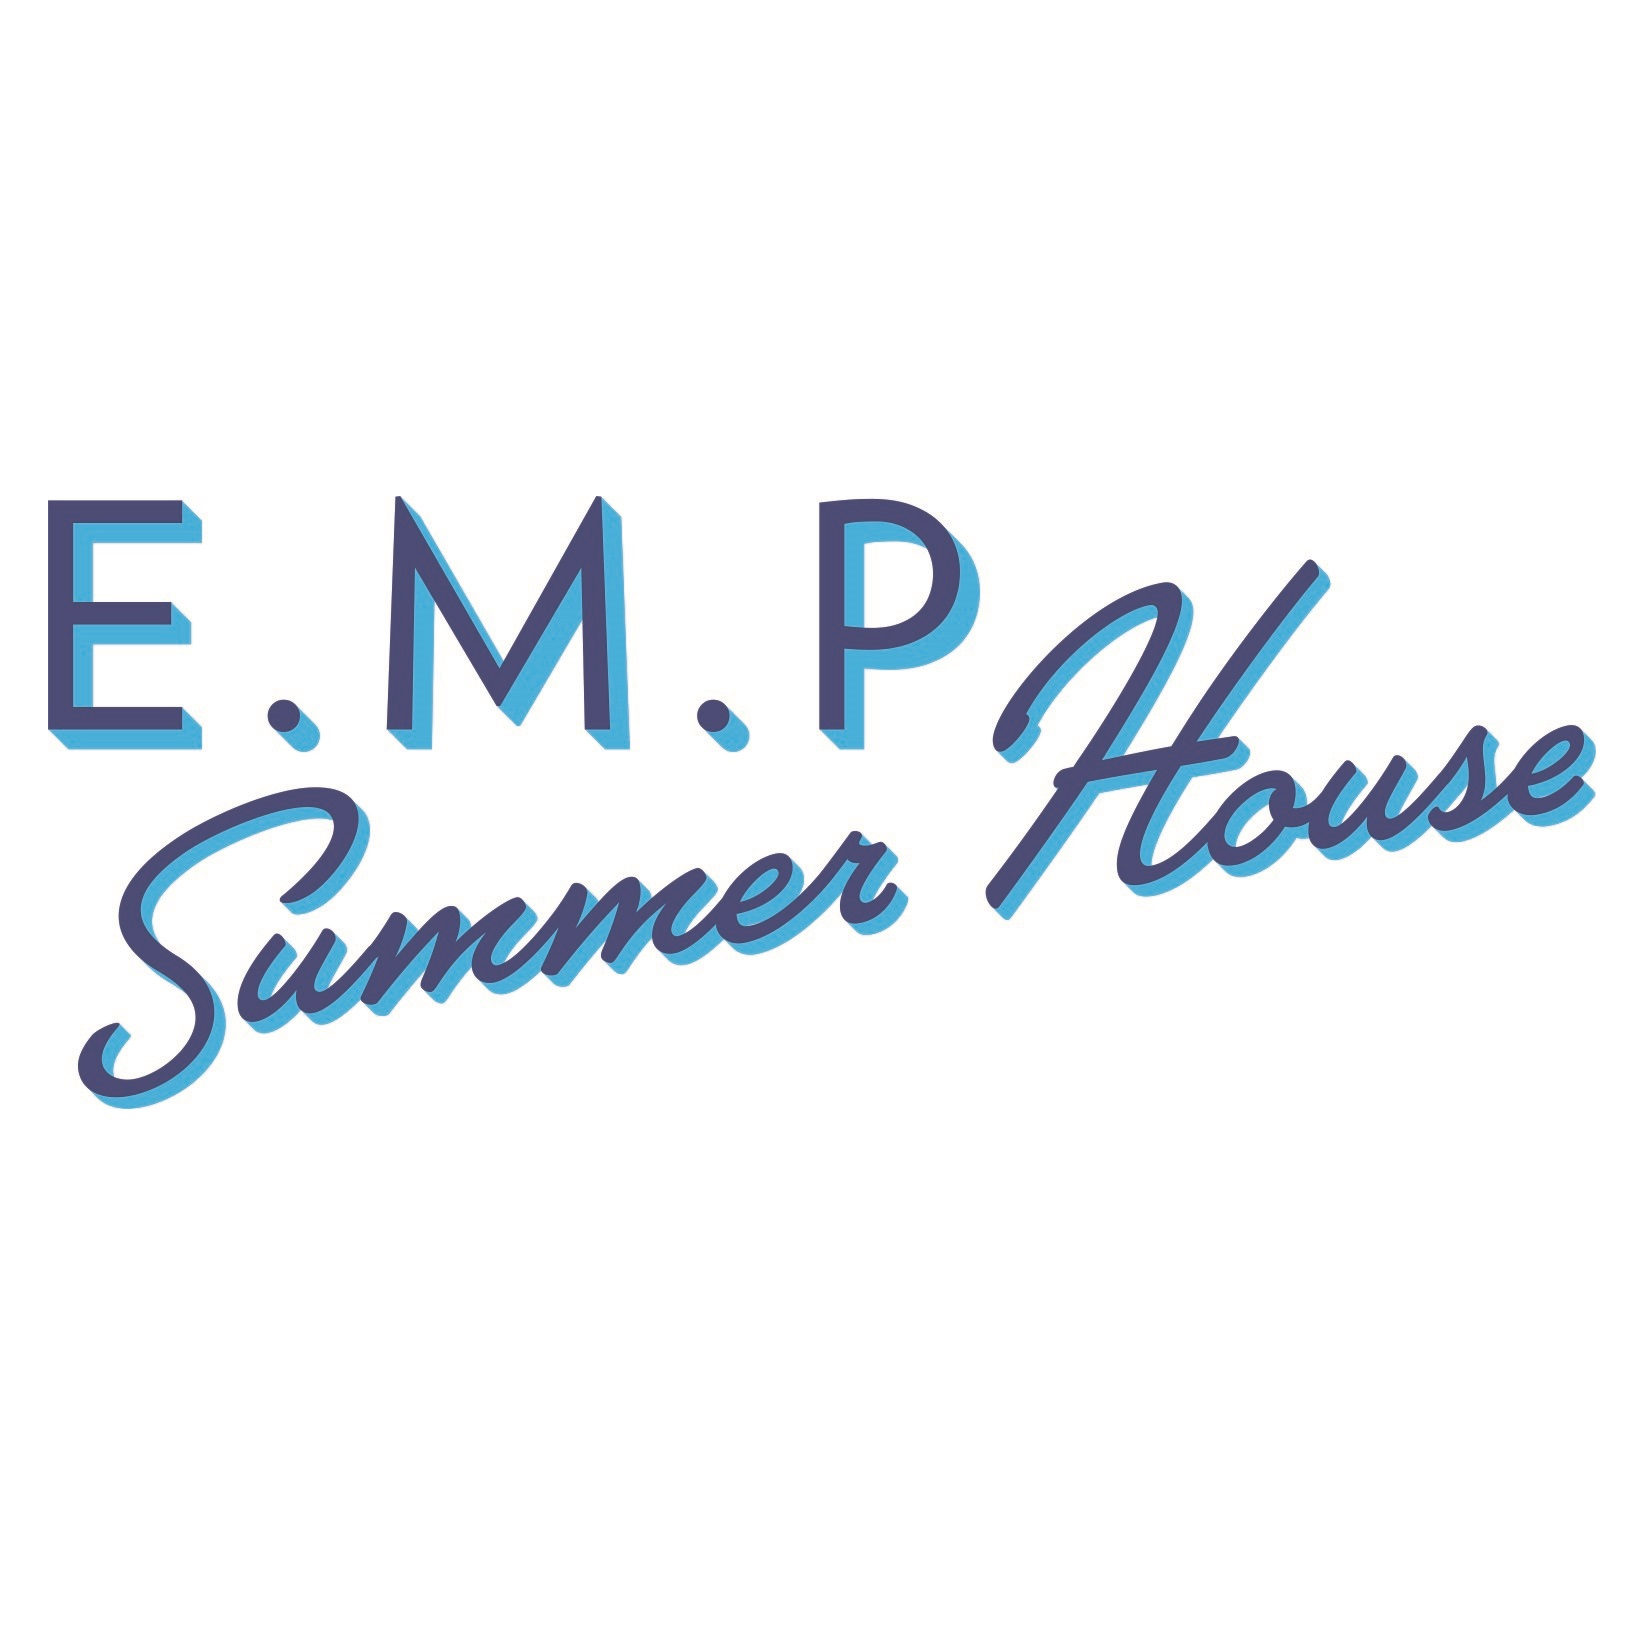 EMP Summer House - square.jpg